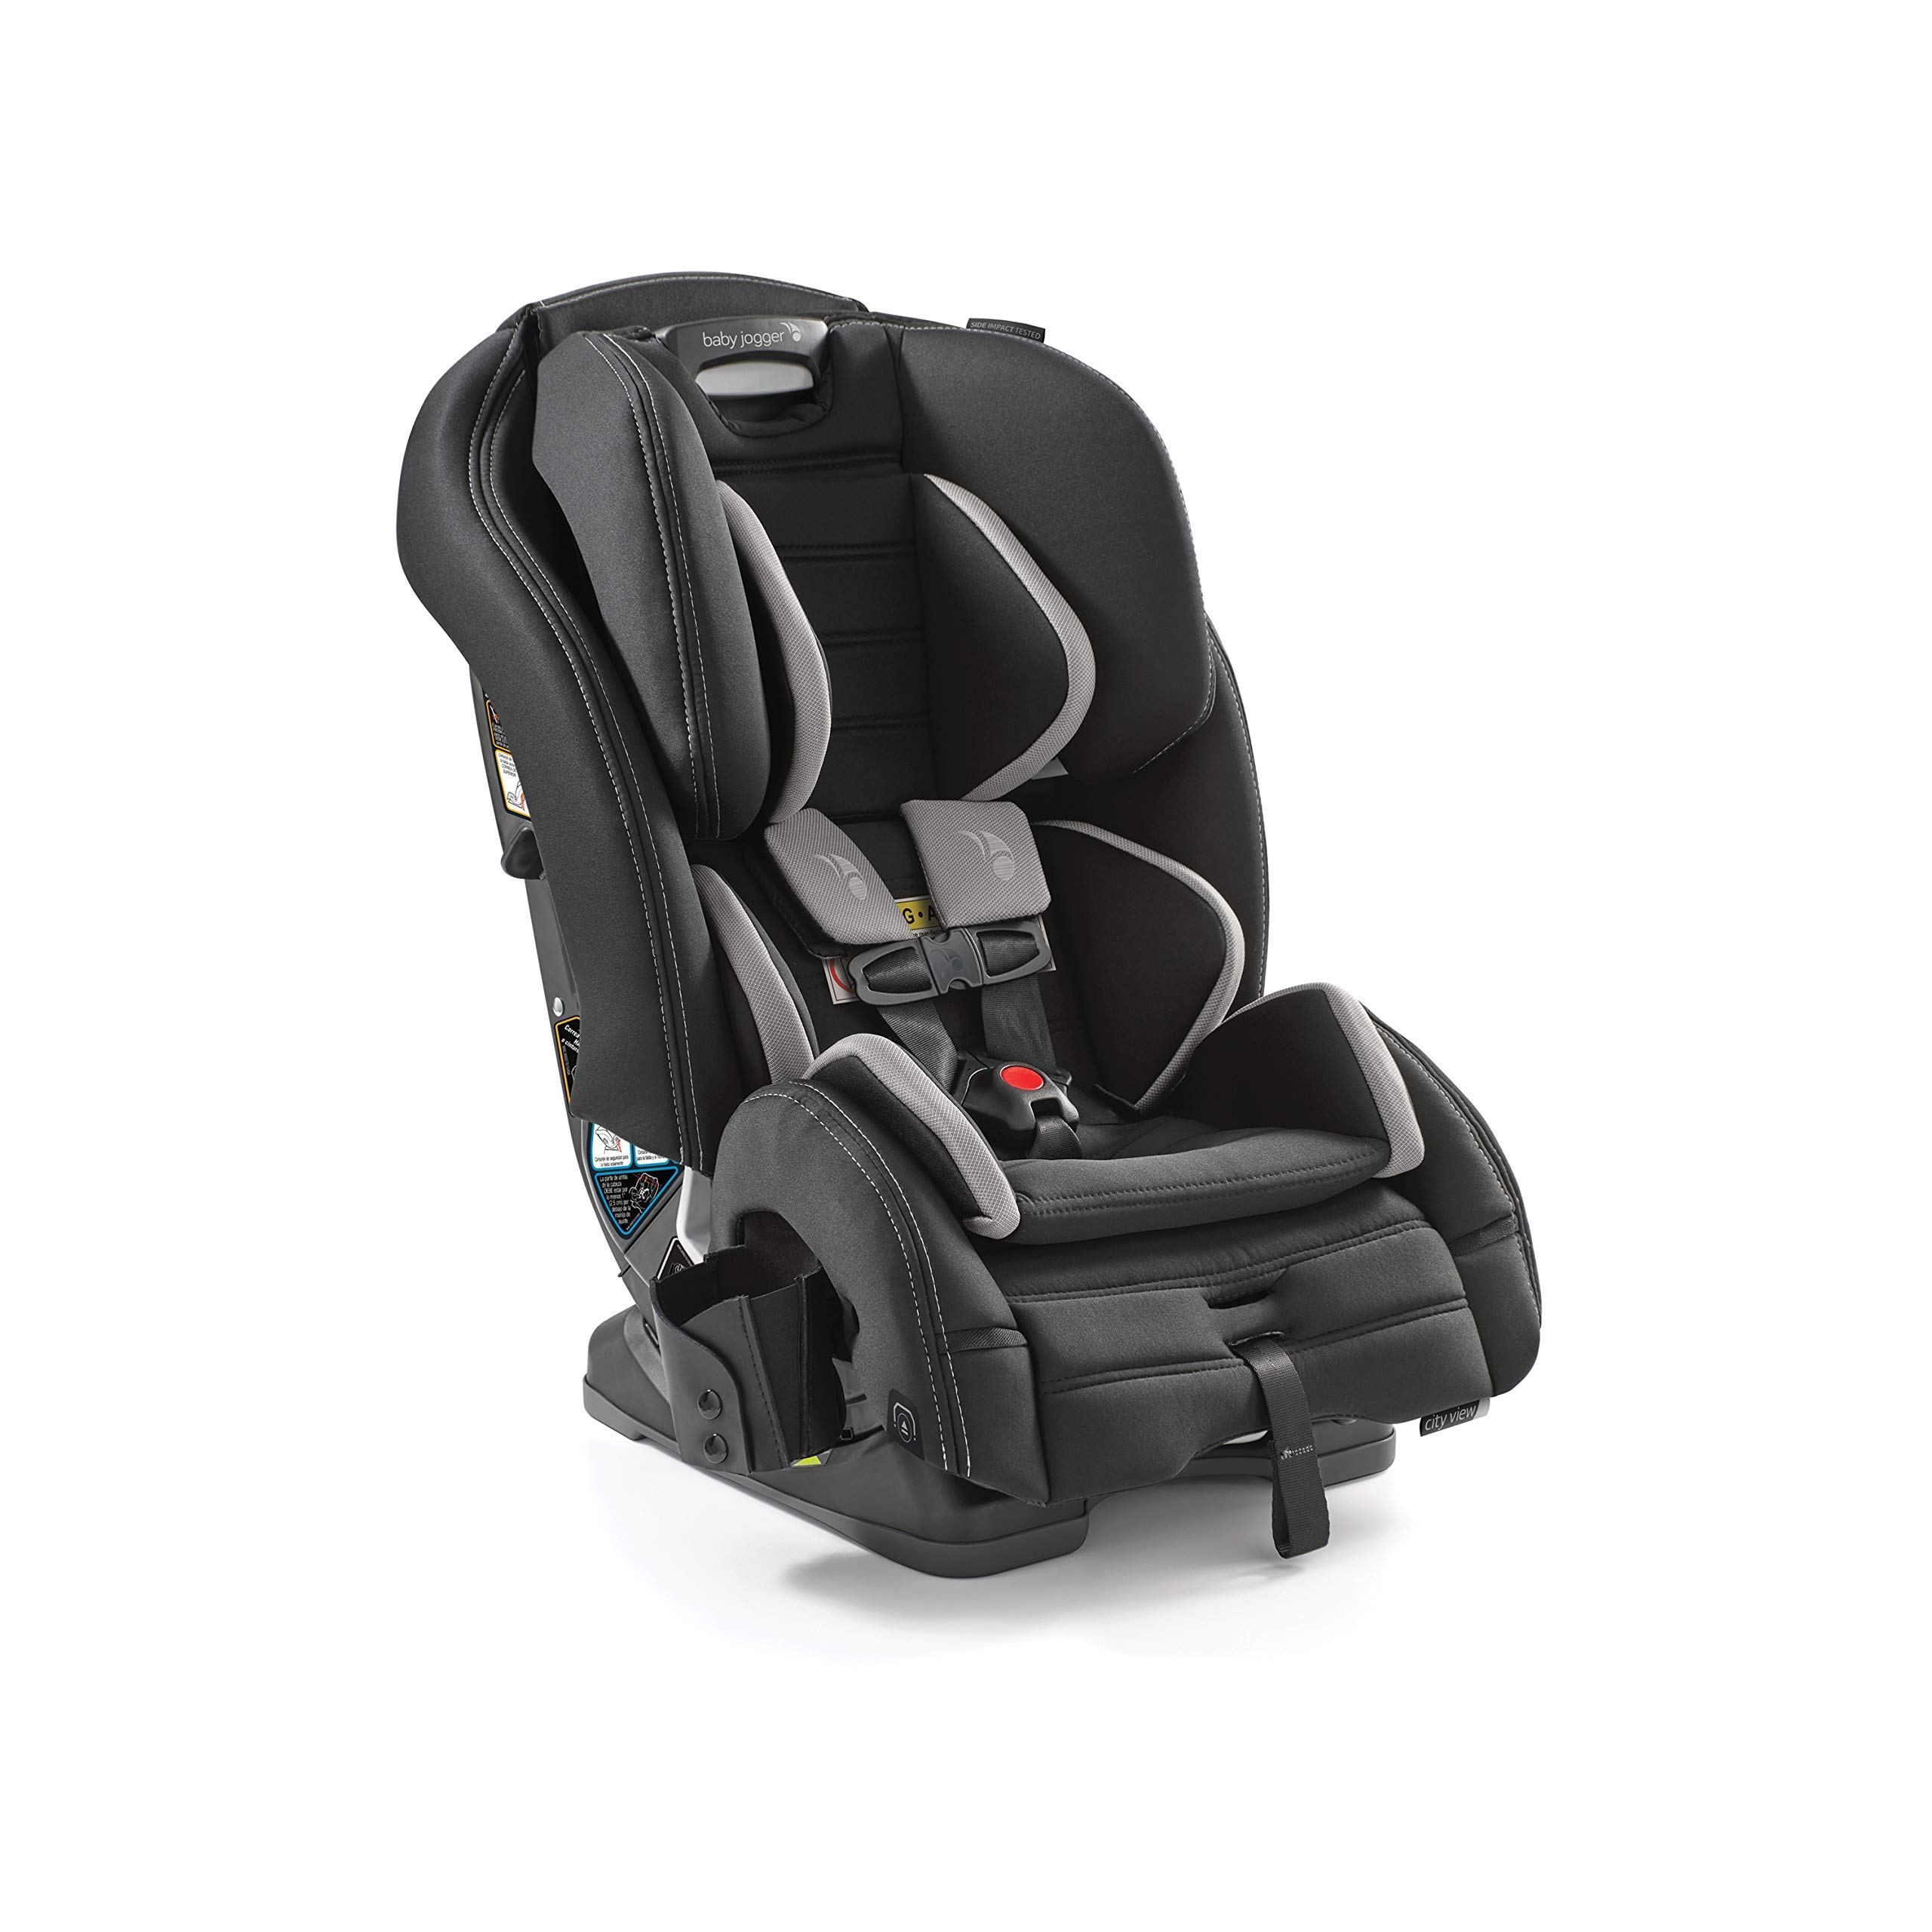 Baby Jogger City View Space Saving AllinOne Car Seat